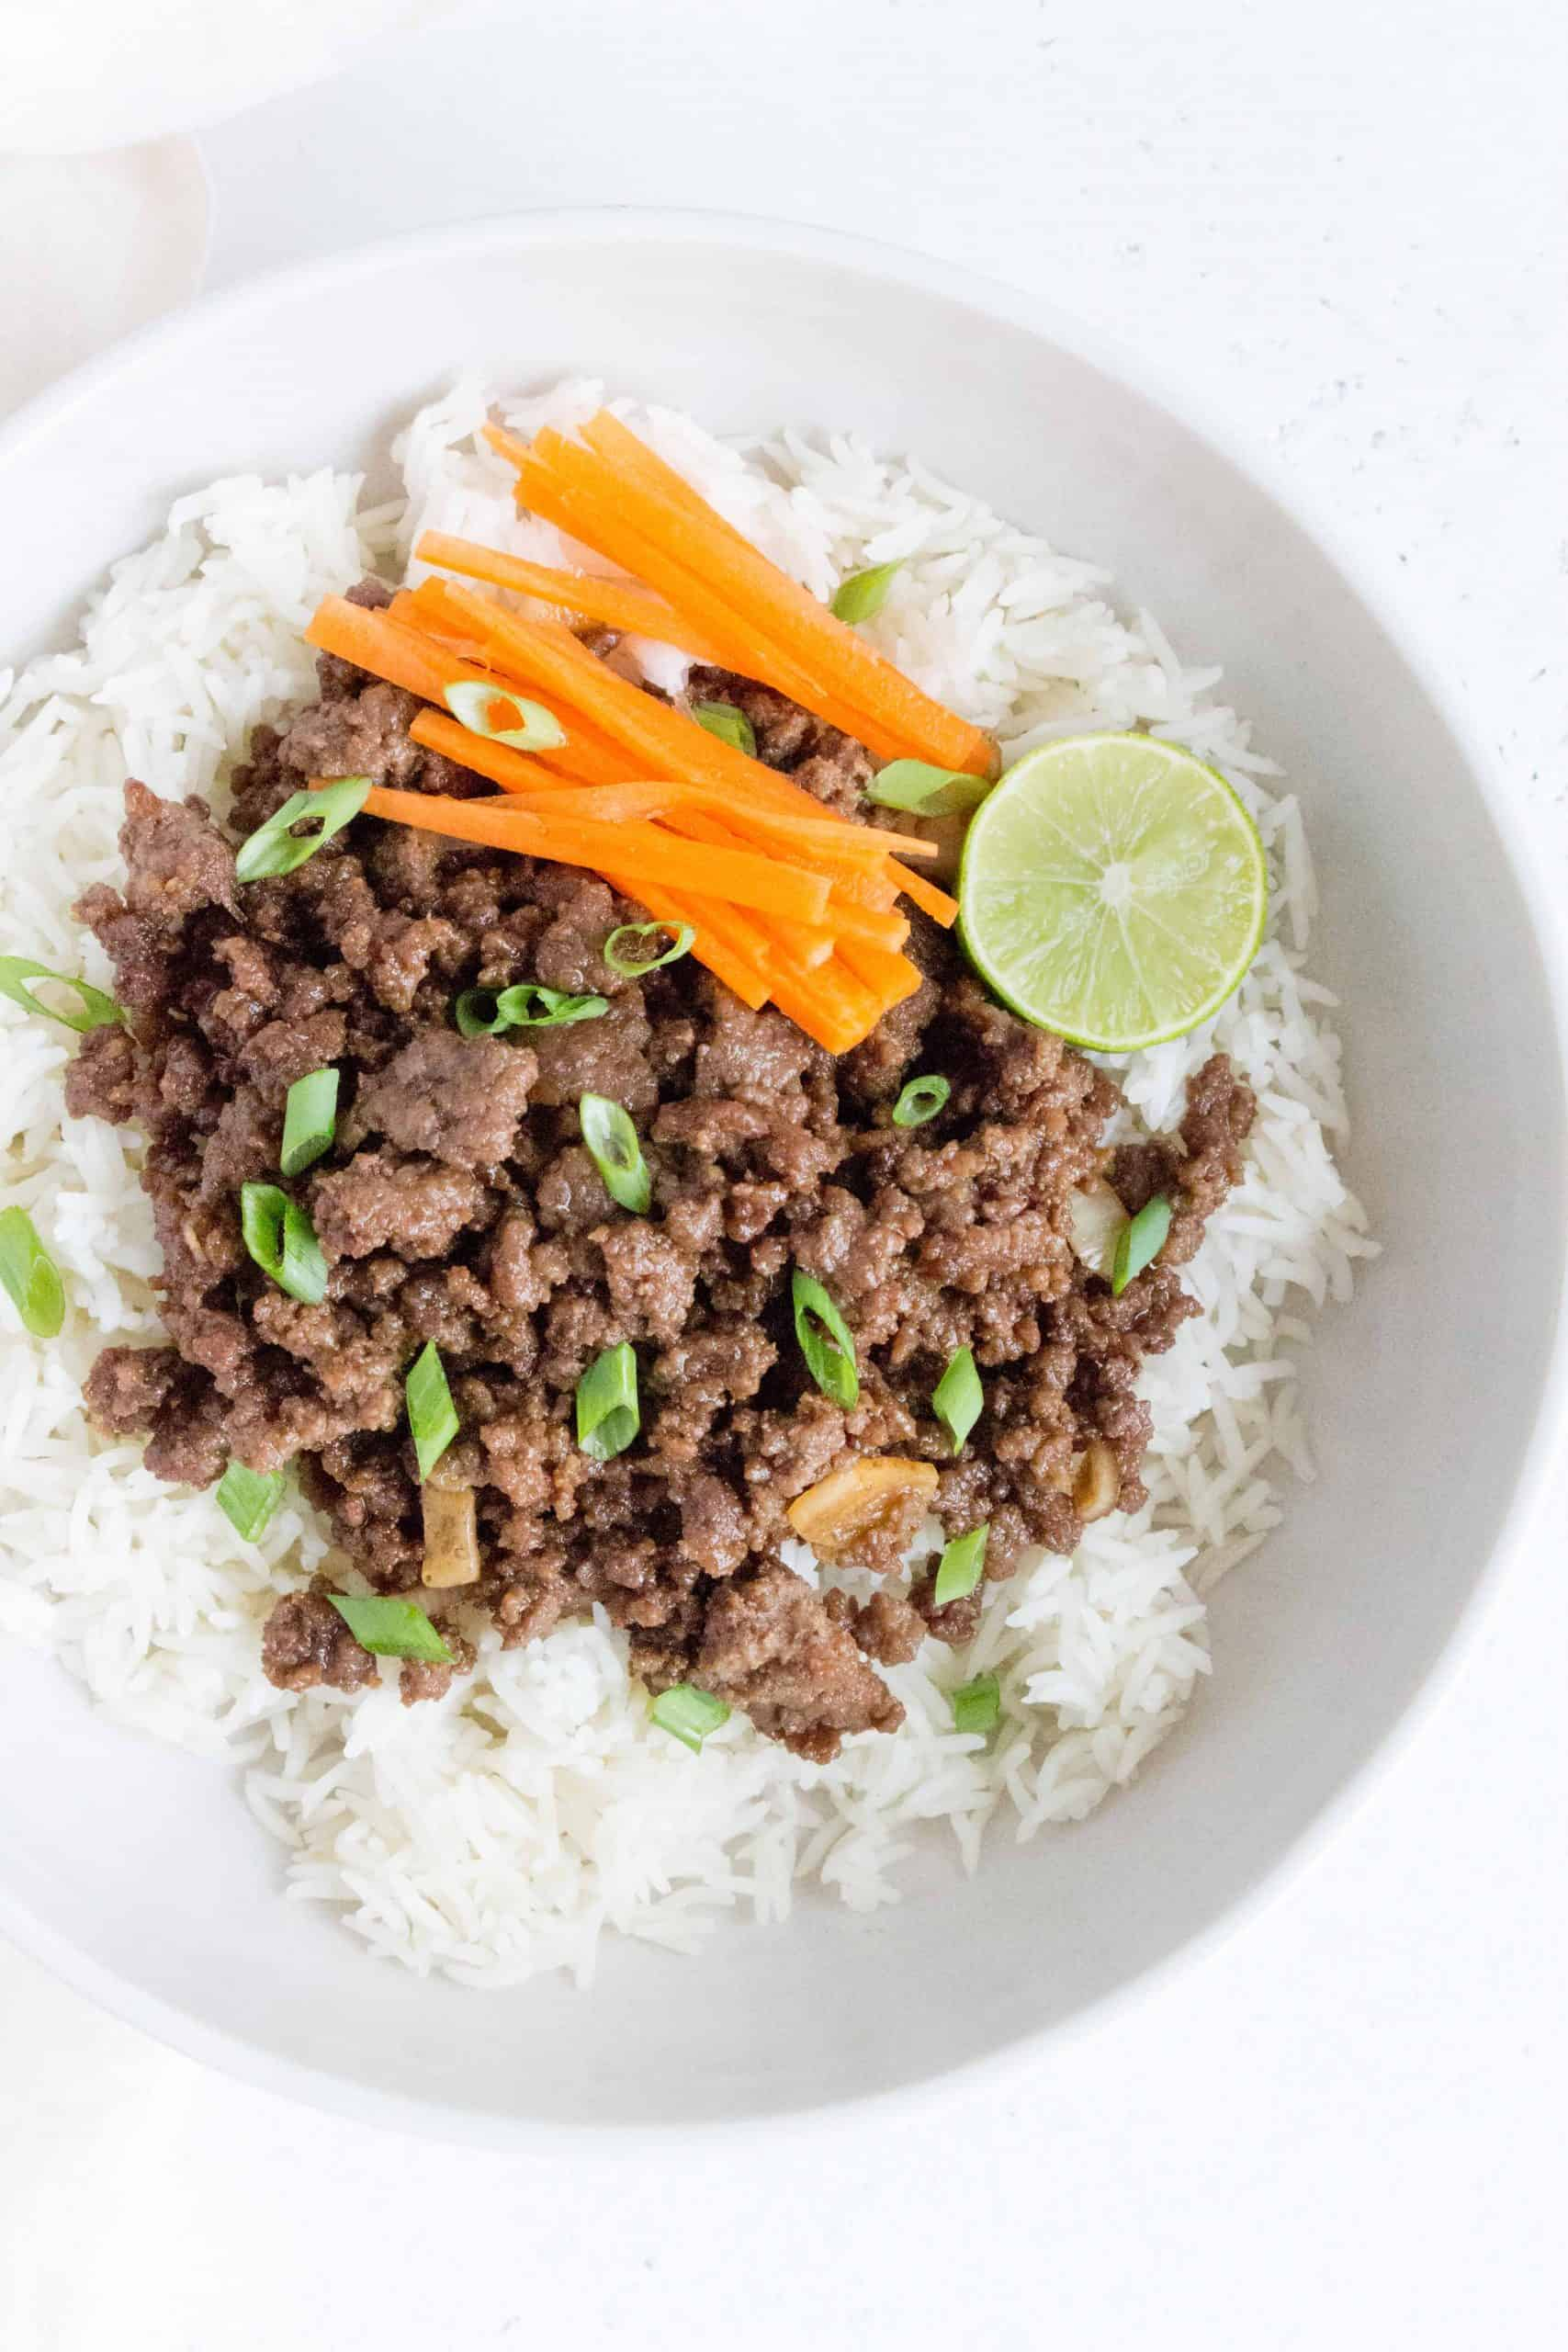 Made in under 30 minutes, this Honey Hoisin Beef Bowls is the perfect mix of sweet and savoury! This quick recipe makes for a delicious meal prep or as a last minute meal.